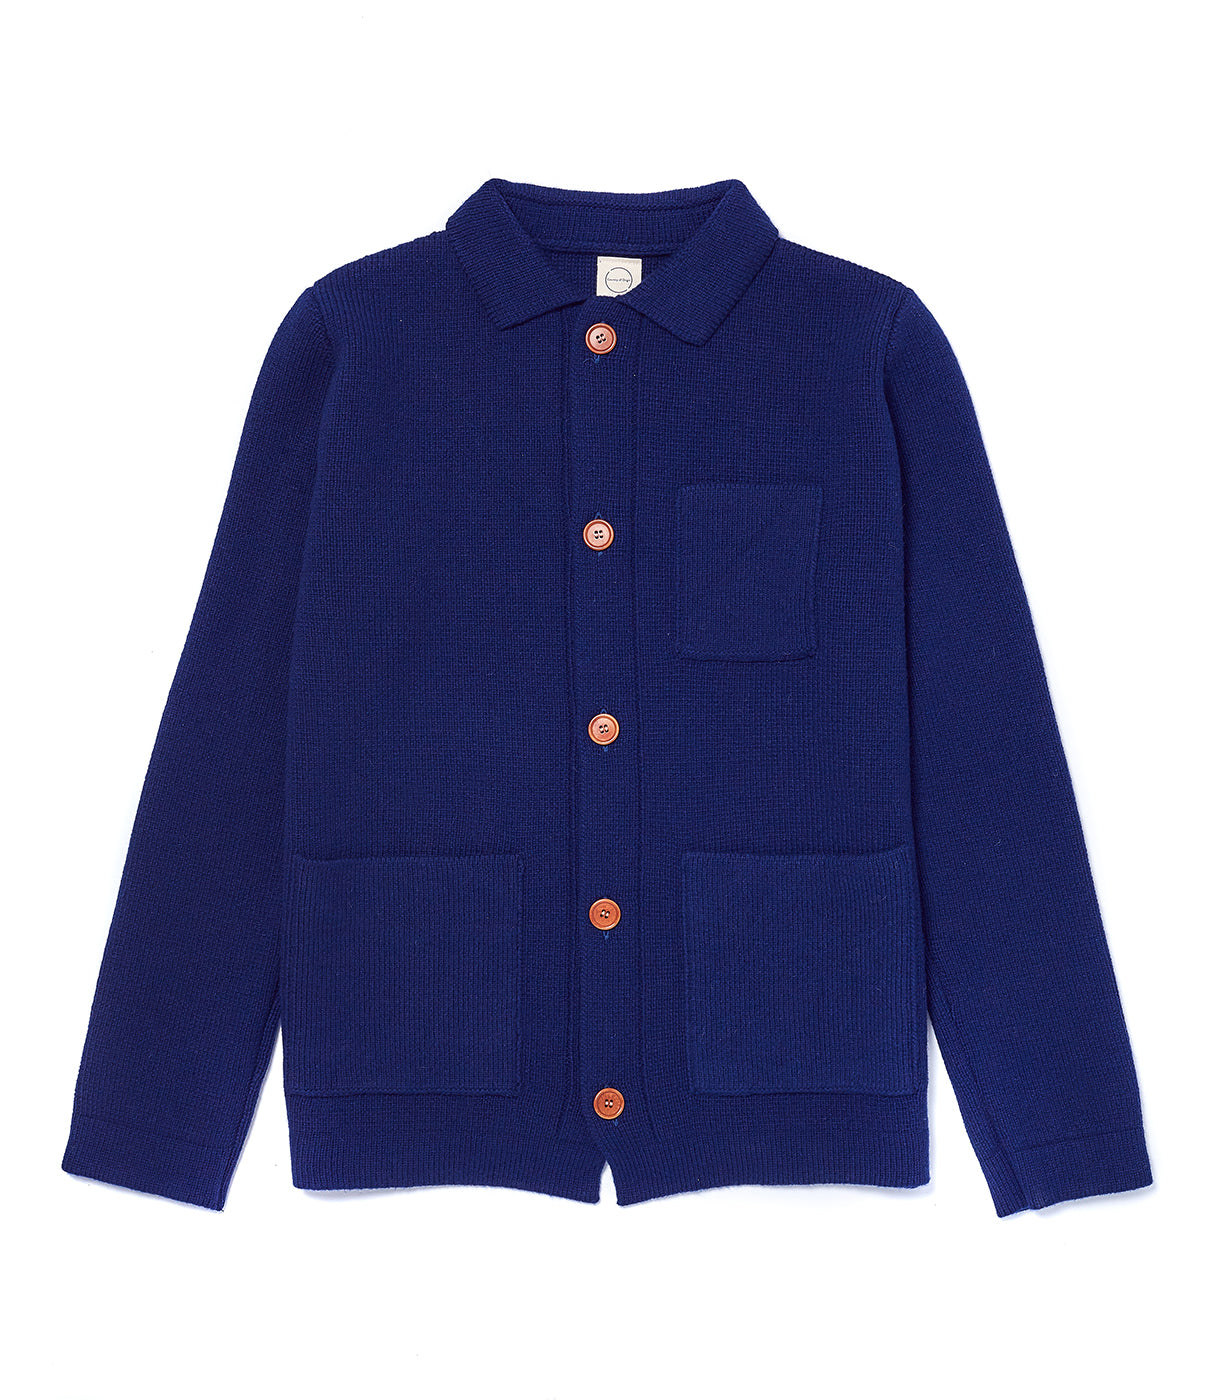 Navy Knitted Chore Jacket